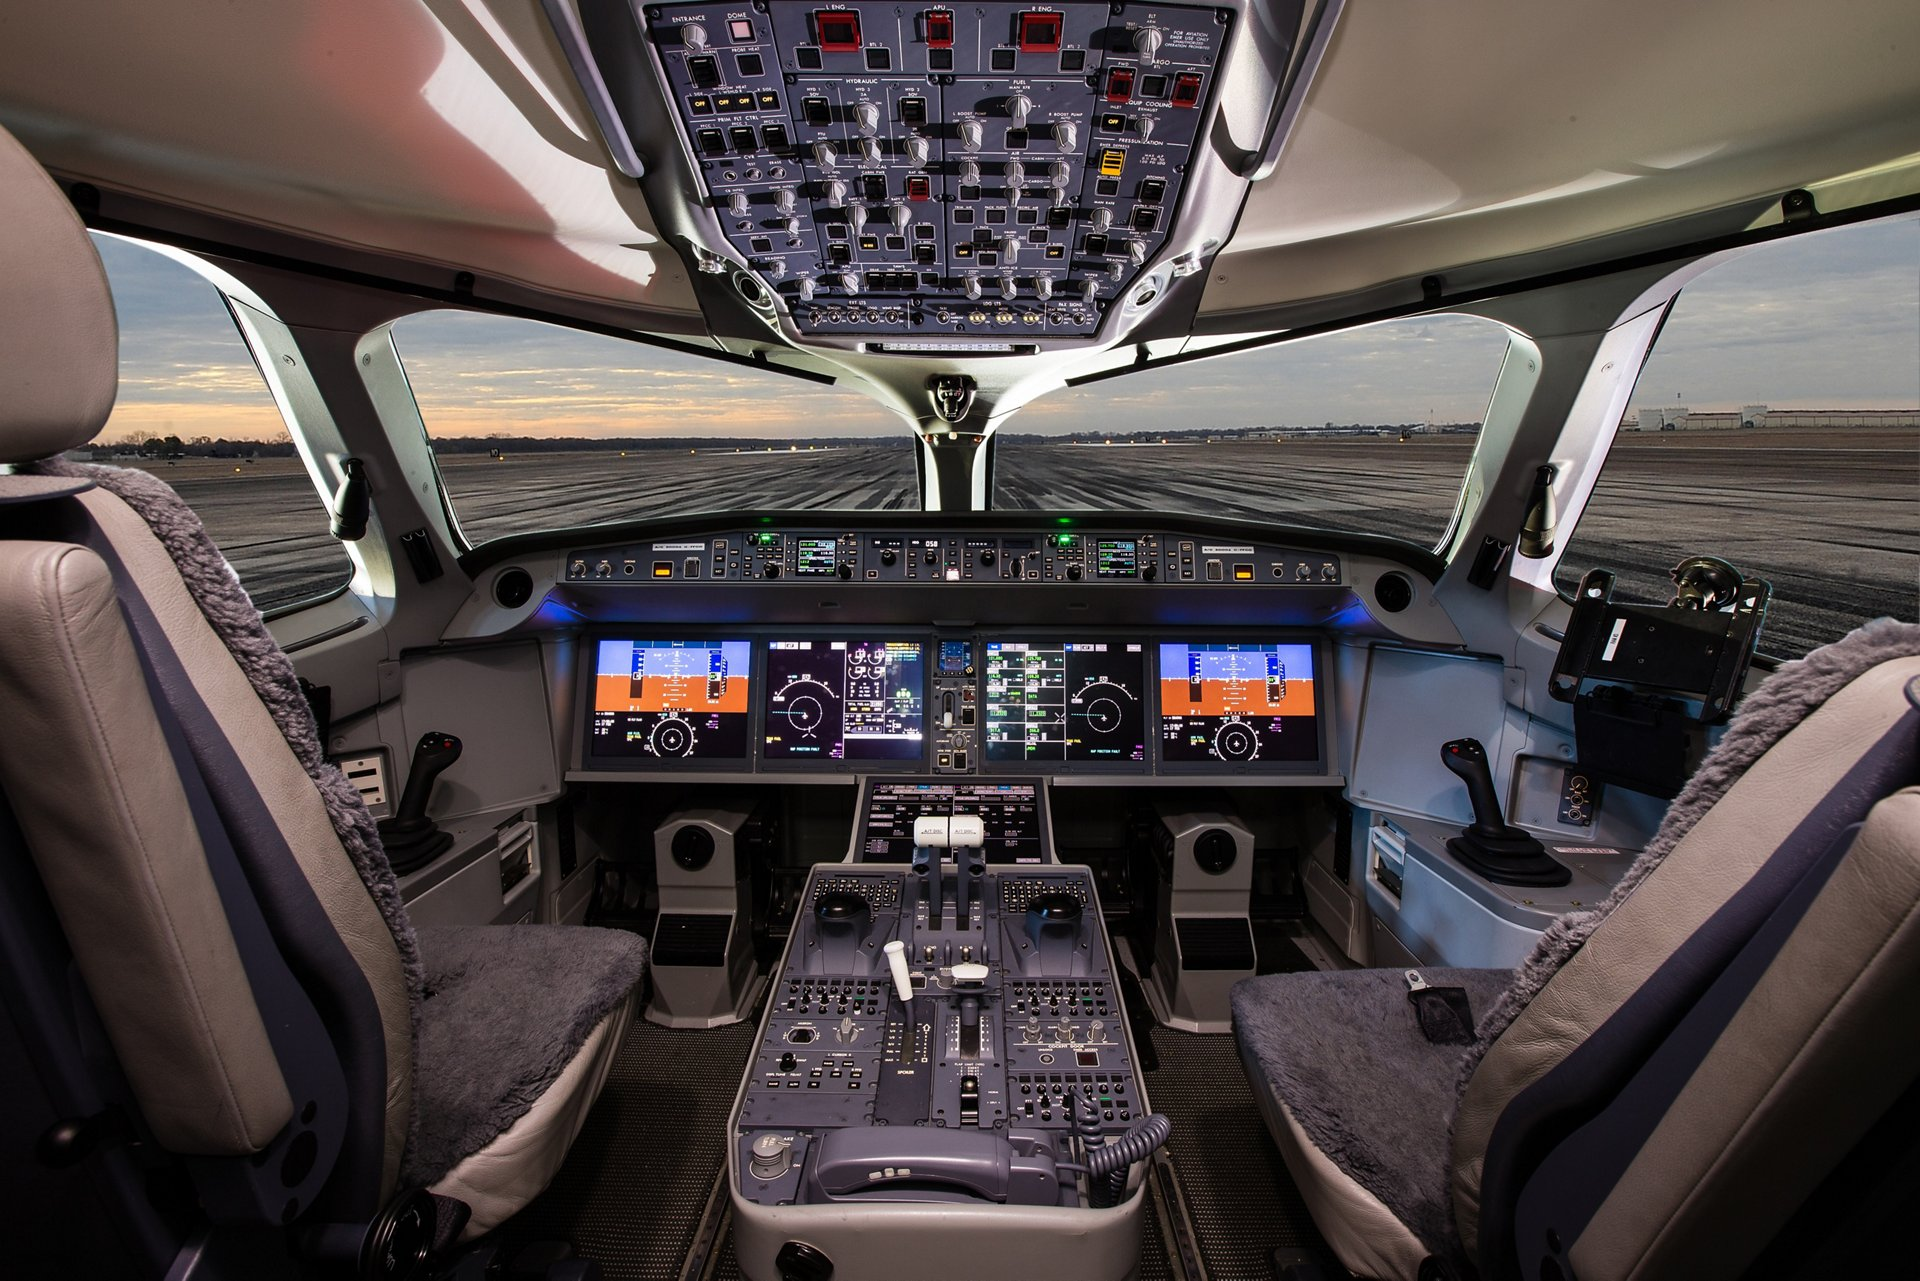 The larger member of the A220 Family, the A220-300, shares high levels of commonality with the A220-100 variant – including in the cockpit – allowing a seamless transition between the two versions for pilots and the cabin crew